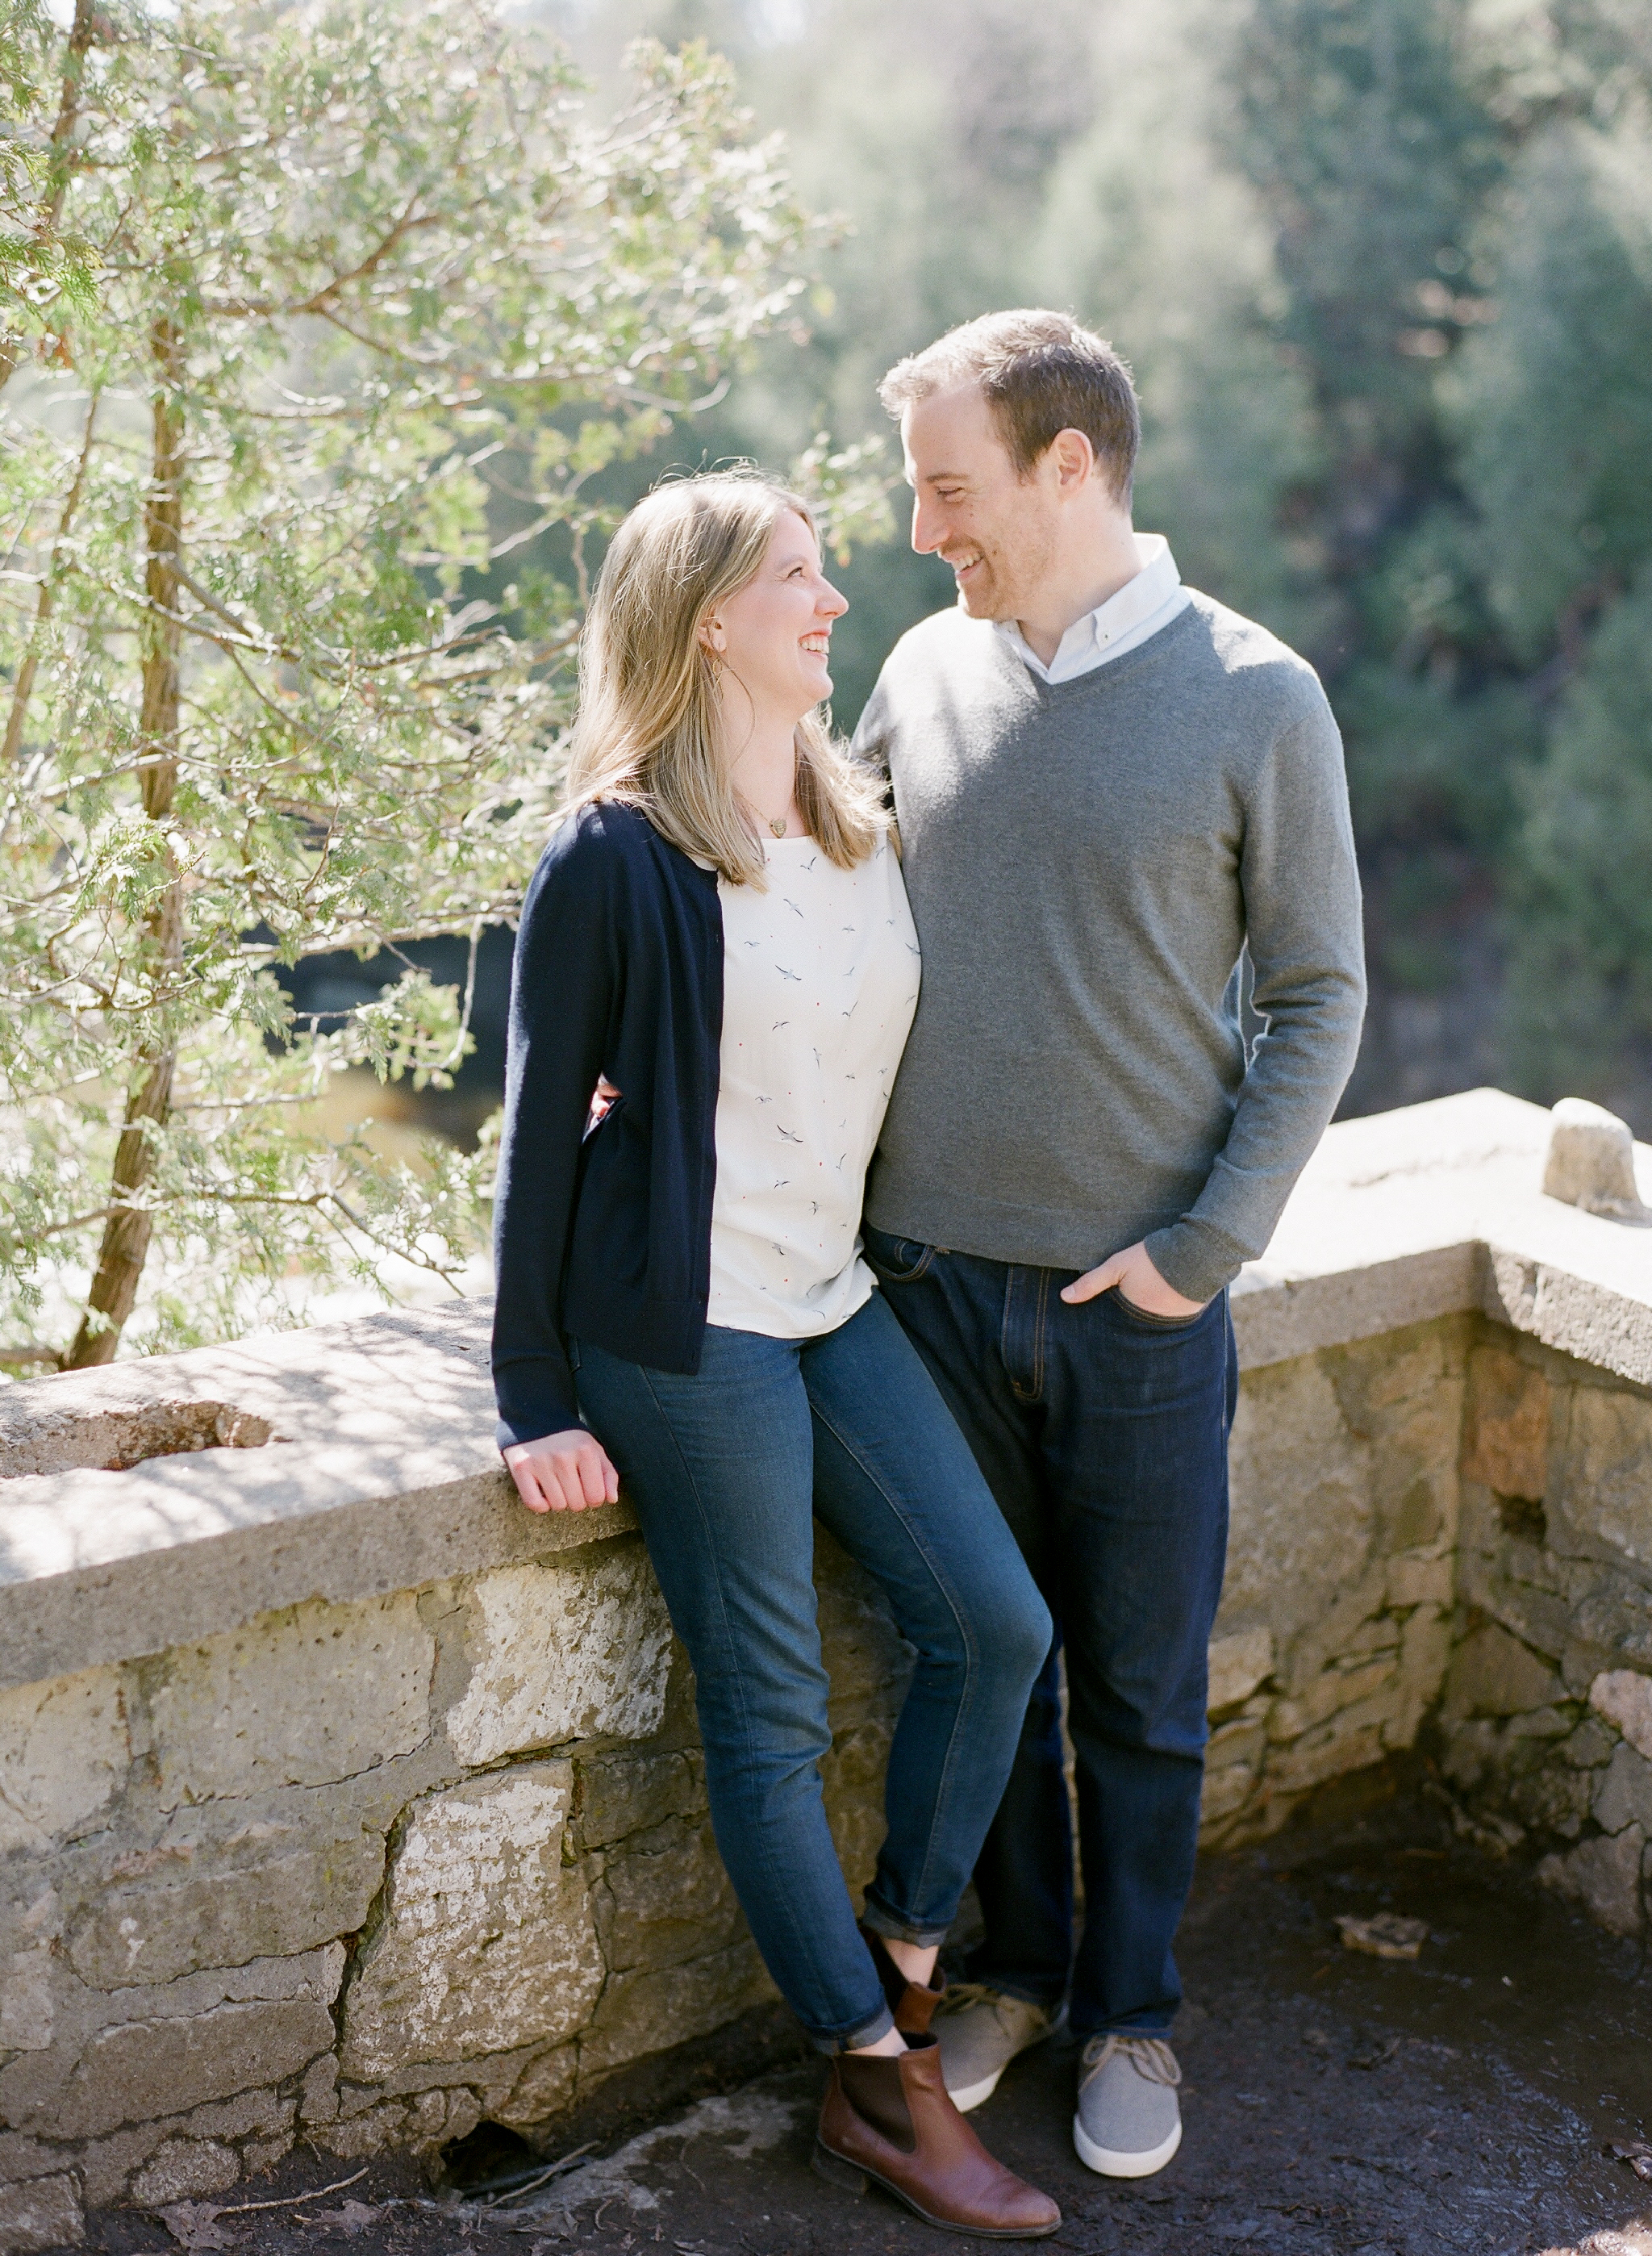 An Elora Engagement Session at Lover's Leap